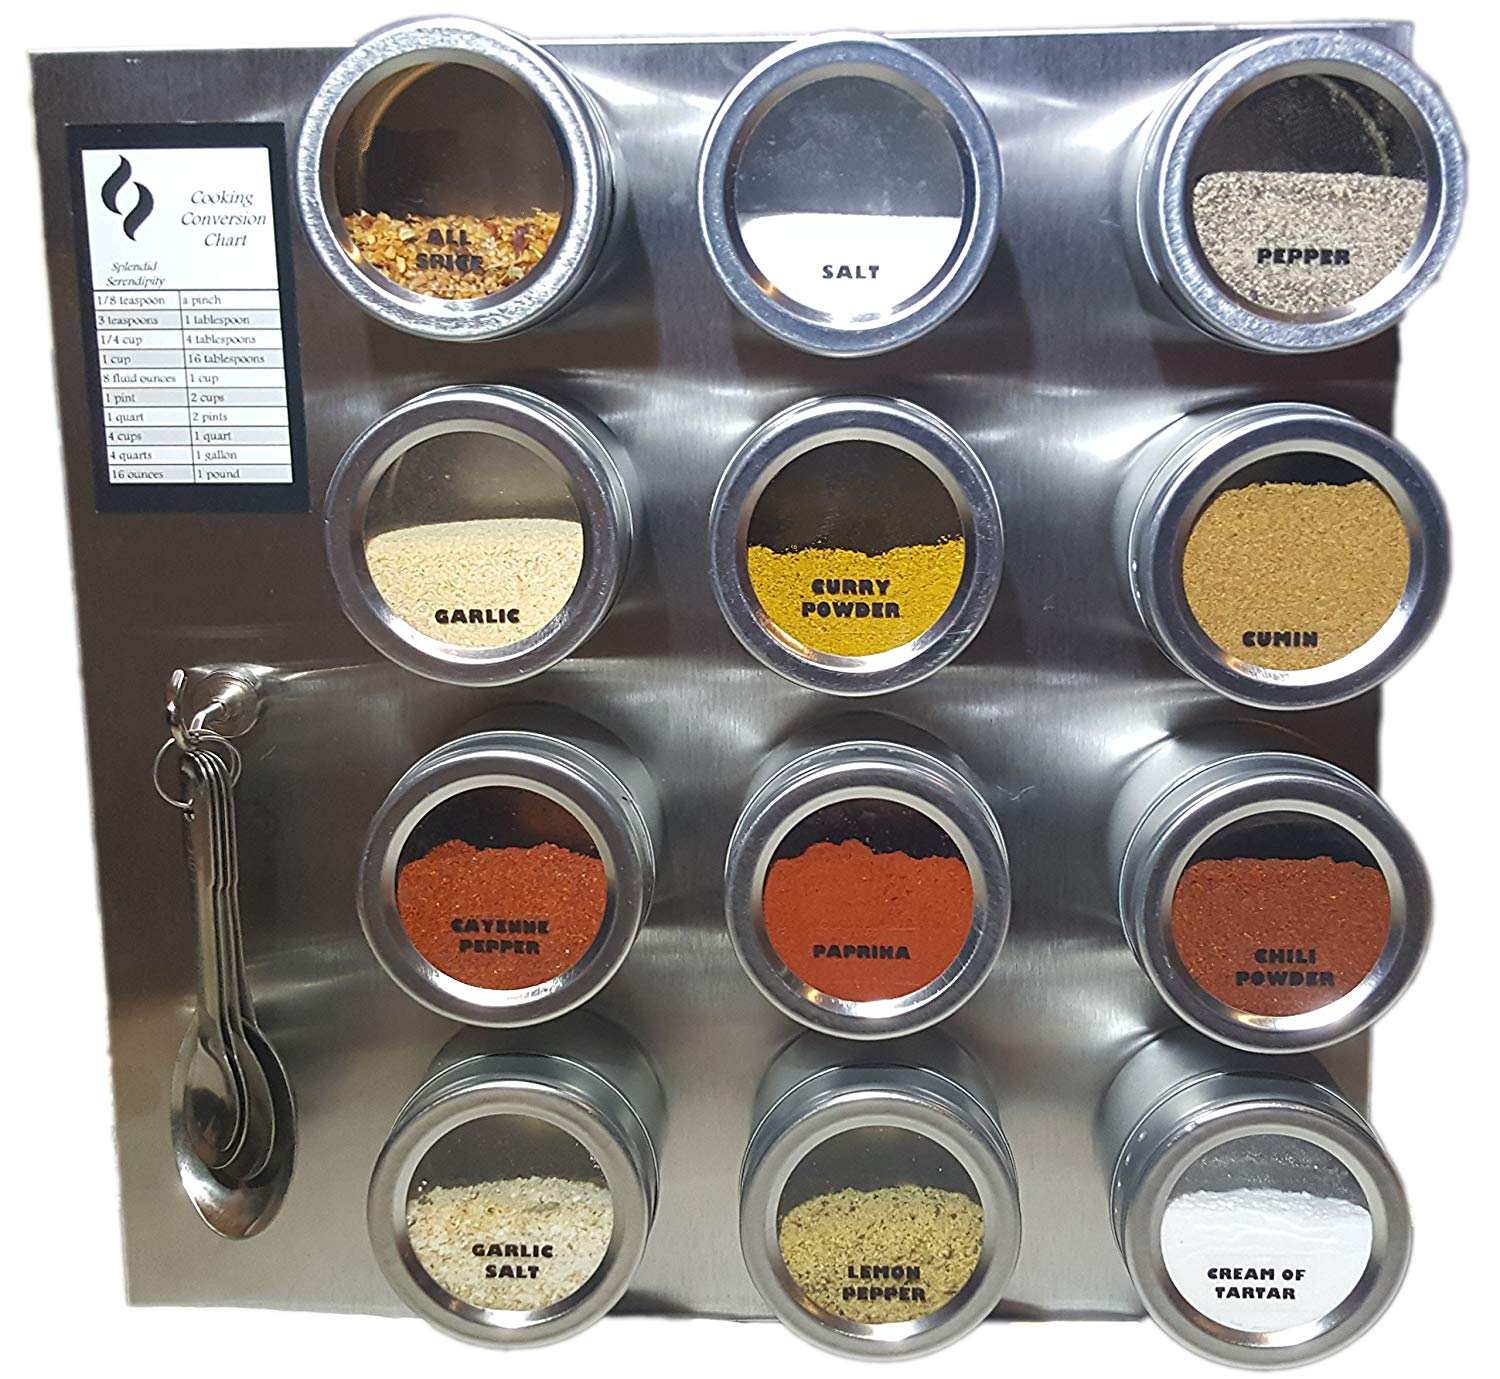 Magnetic Spice Rack (12 Spice Tins [3.4 oz. Jars], Stainless Steel Wall Plate, Spice Labels, Measuring Spoons, Cooking Chart)